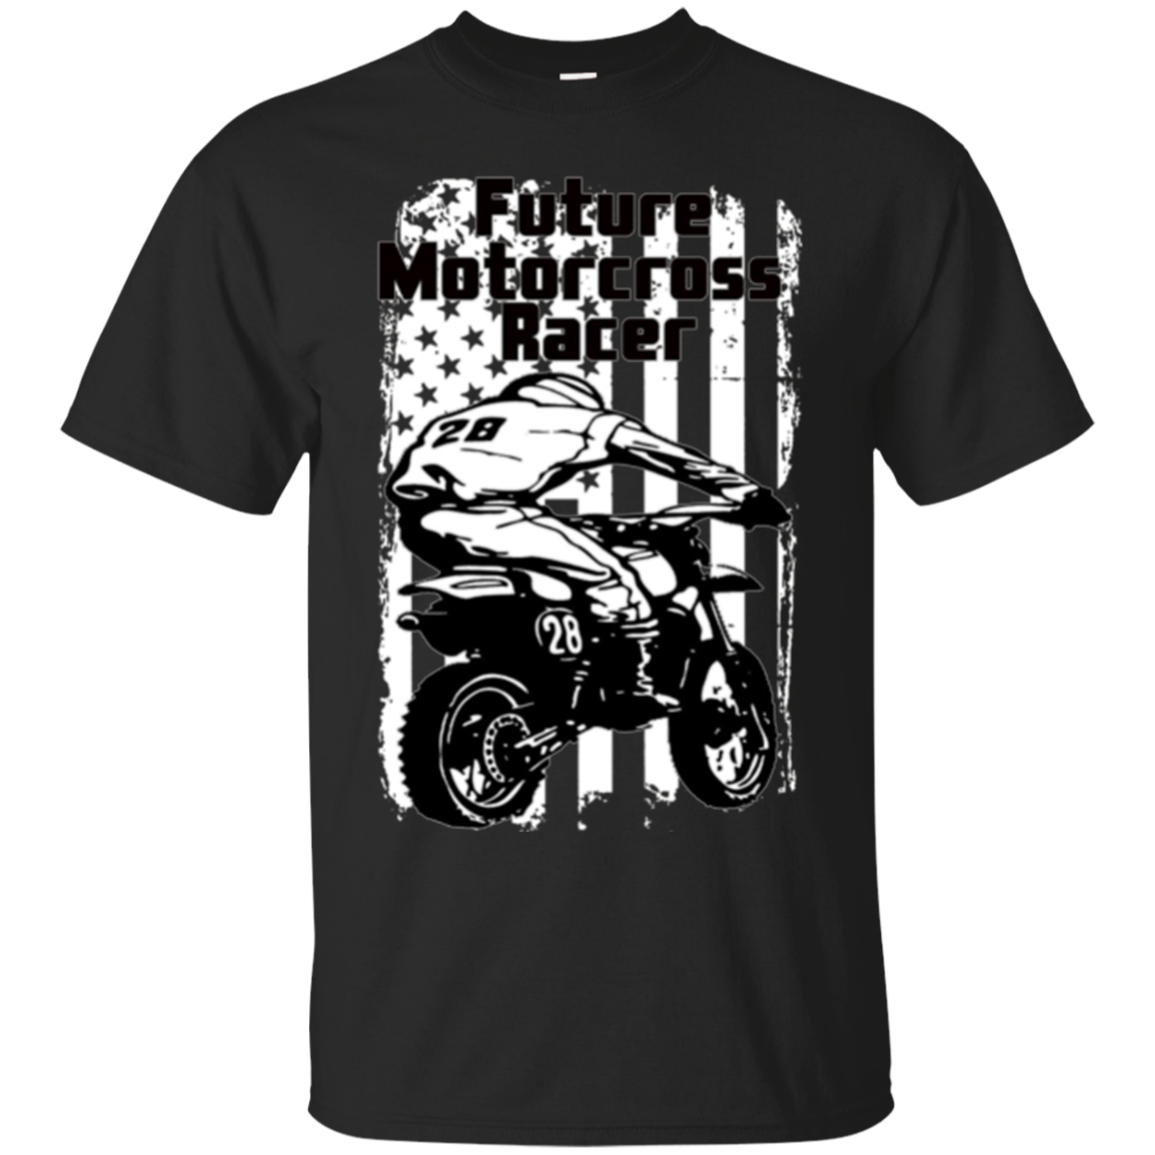 Future Motorcross Racer kids Dirtbike tshirt Motorcycle tee